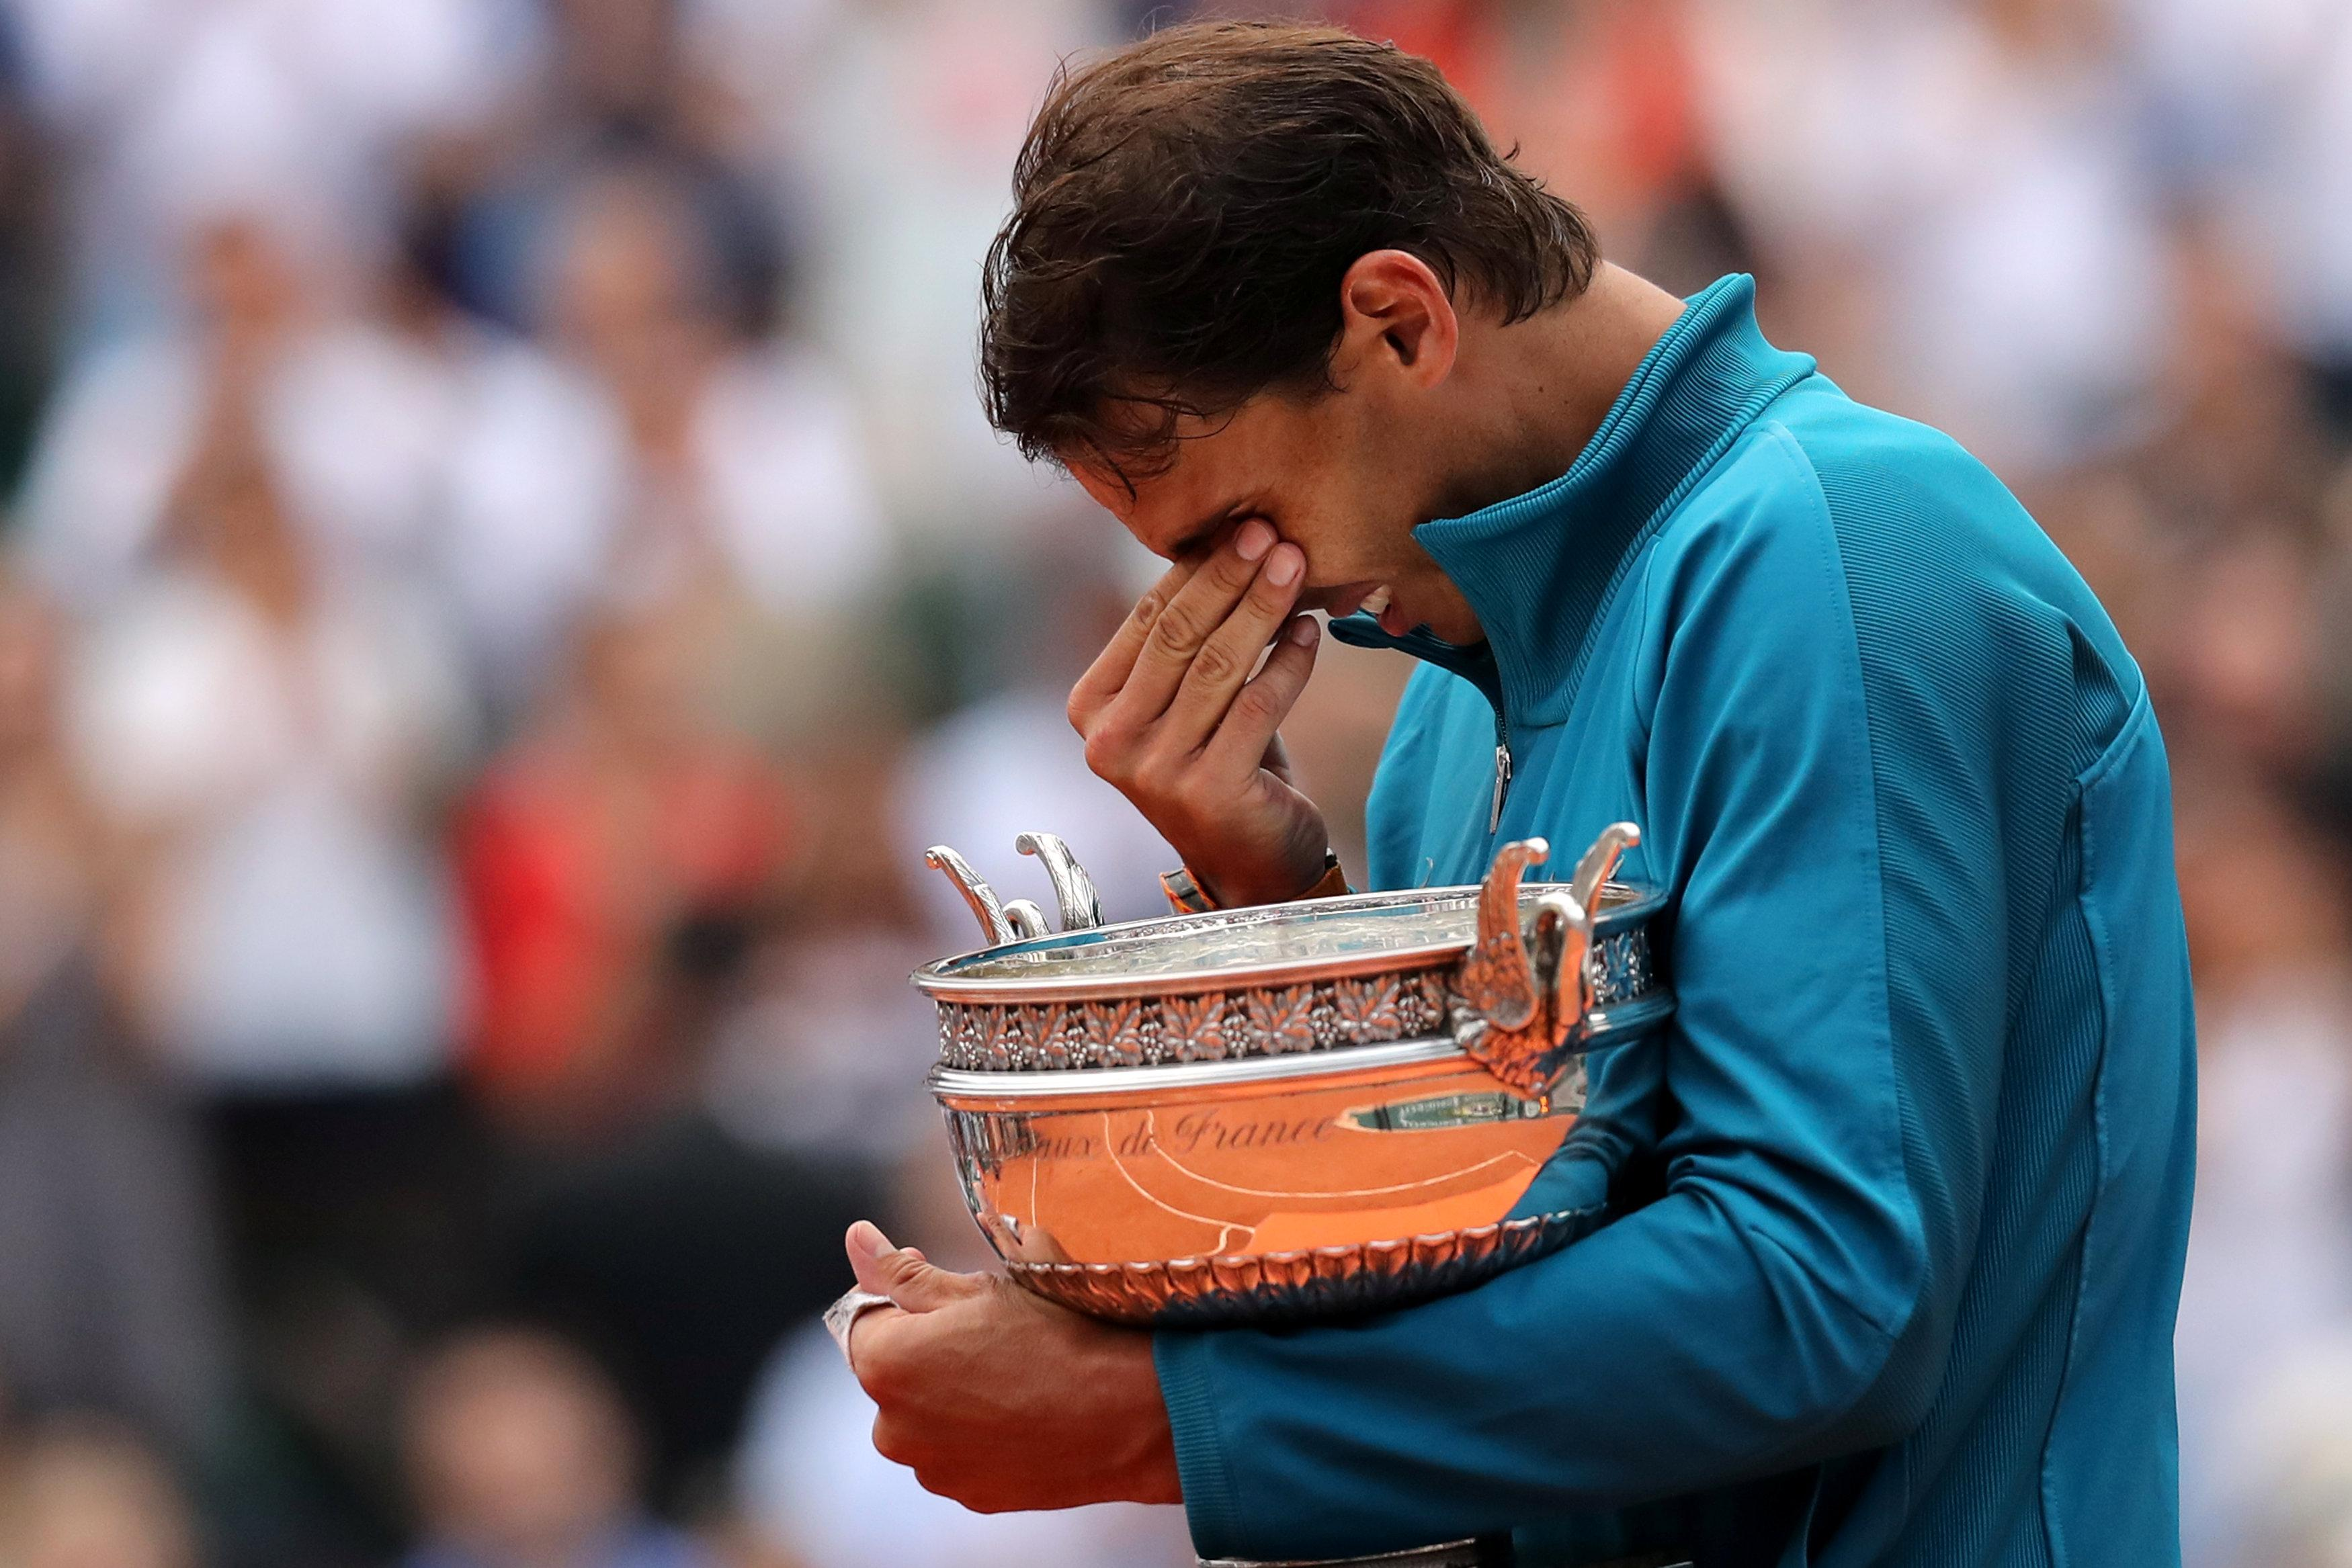 Nadal was overcome with emotion after winning his 11th French Open, which is his 17th Grand Slam title